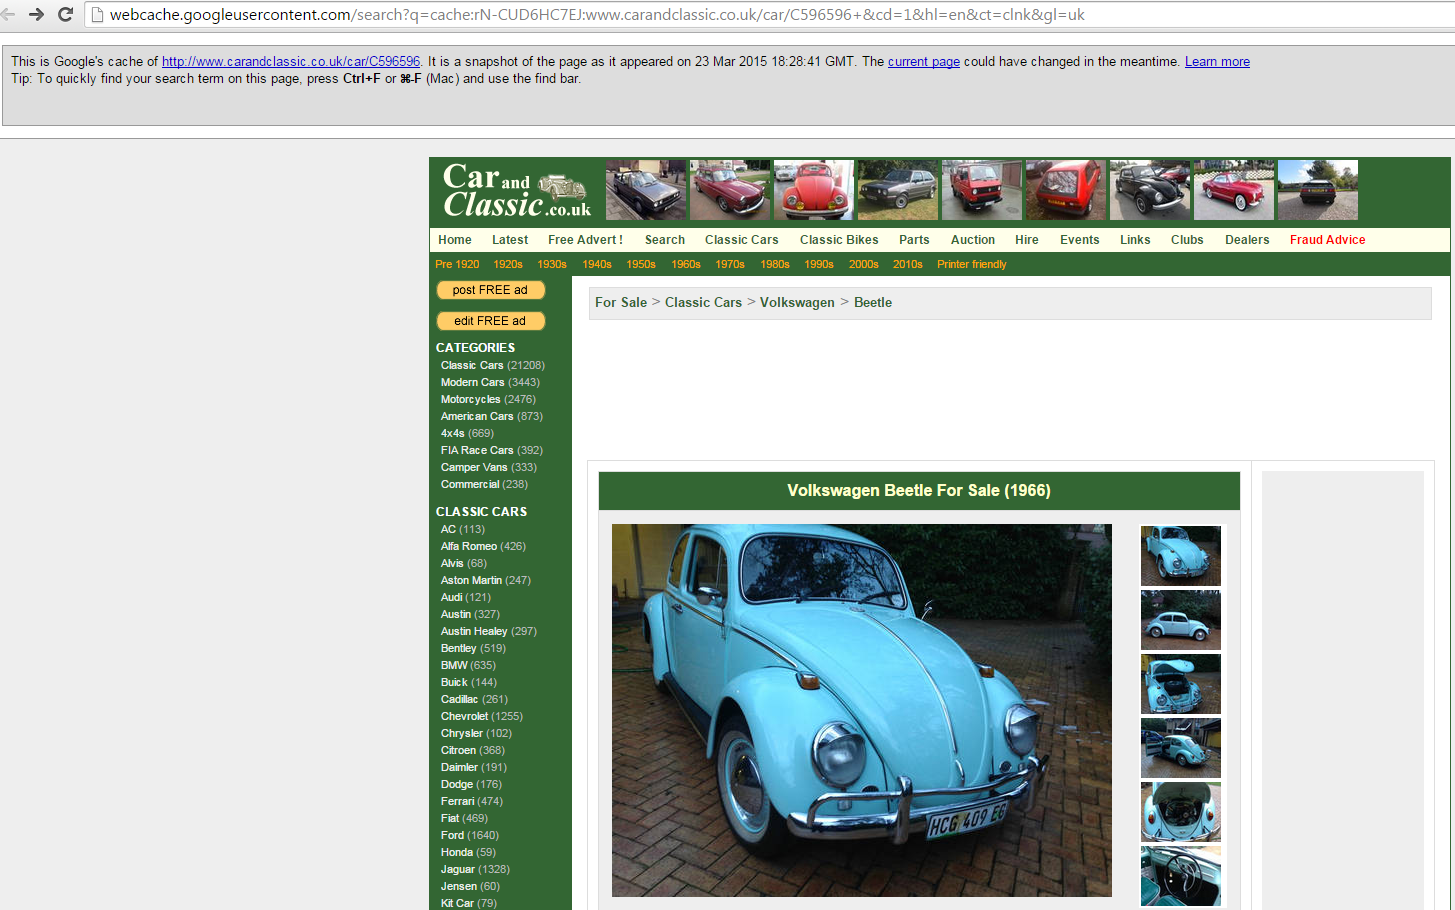 Ebay Scam 1966 Vw Volkswagen Beetle Hcg 409 Ec Fraud 06 Apr 15